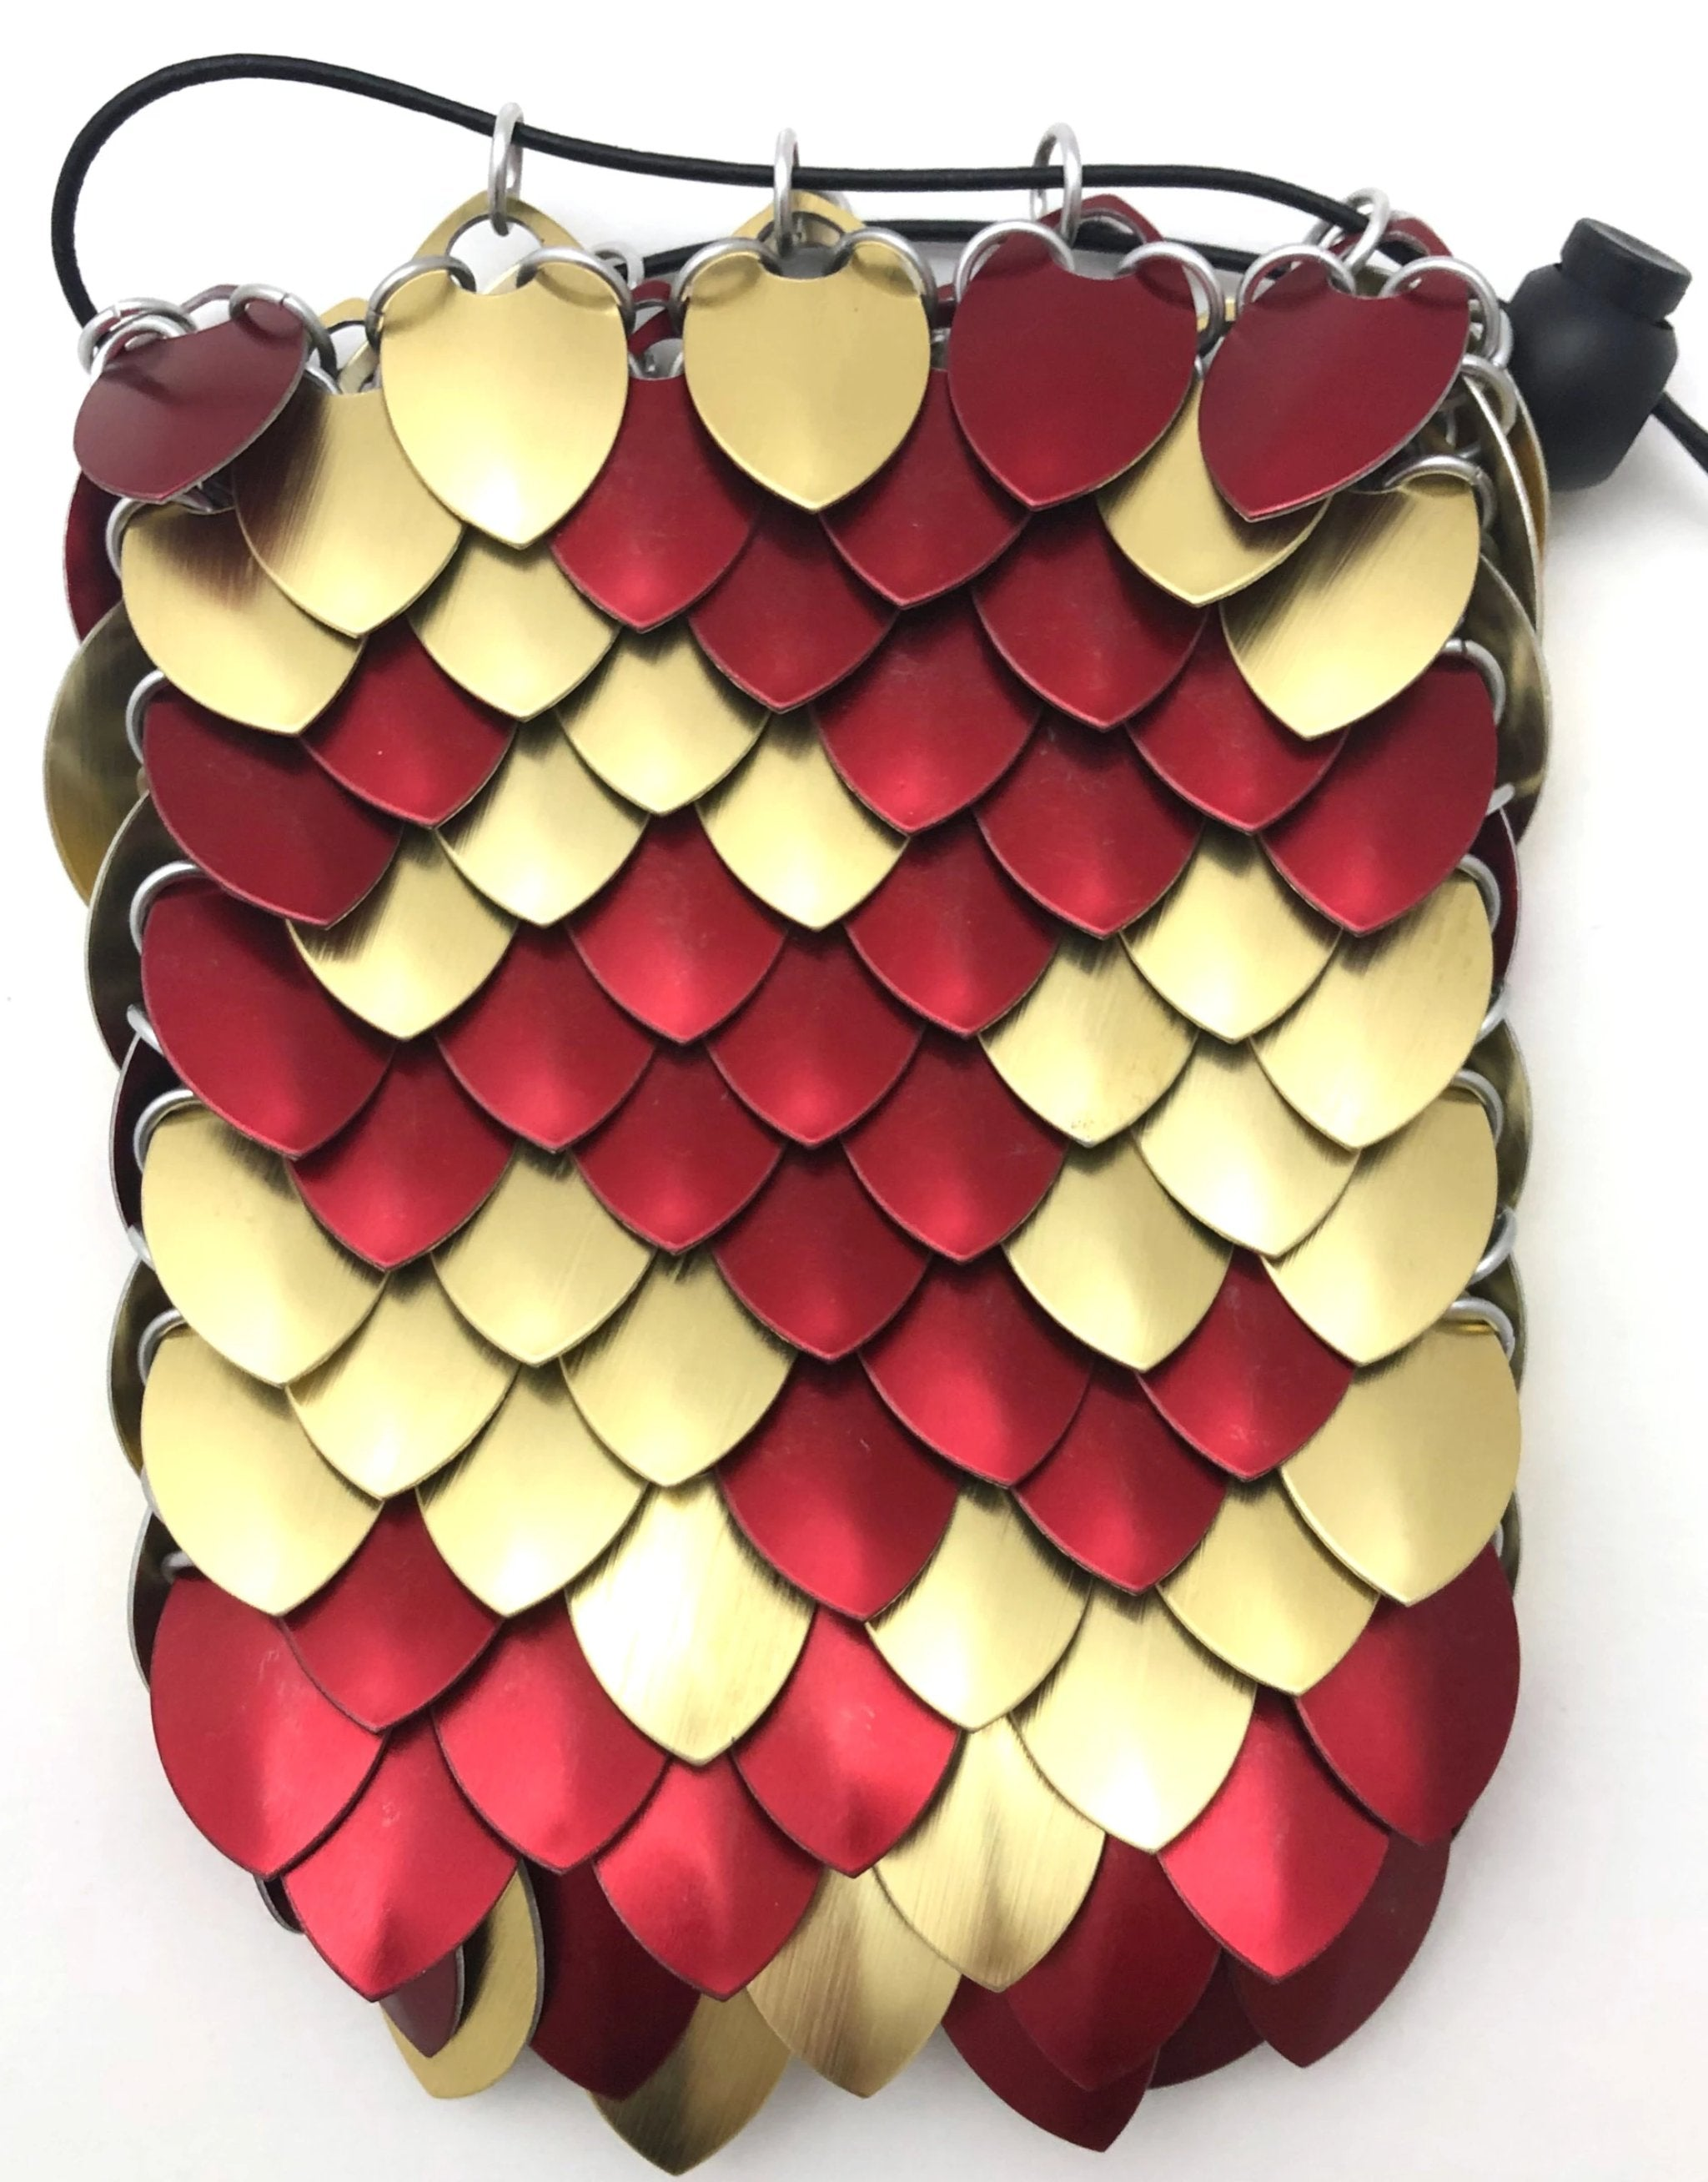 5H x 3D Dragon Scale Dice Bag or Change Purse in Black with RED /& PALE GOLD Metal Scales